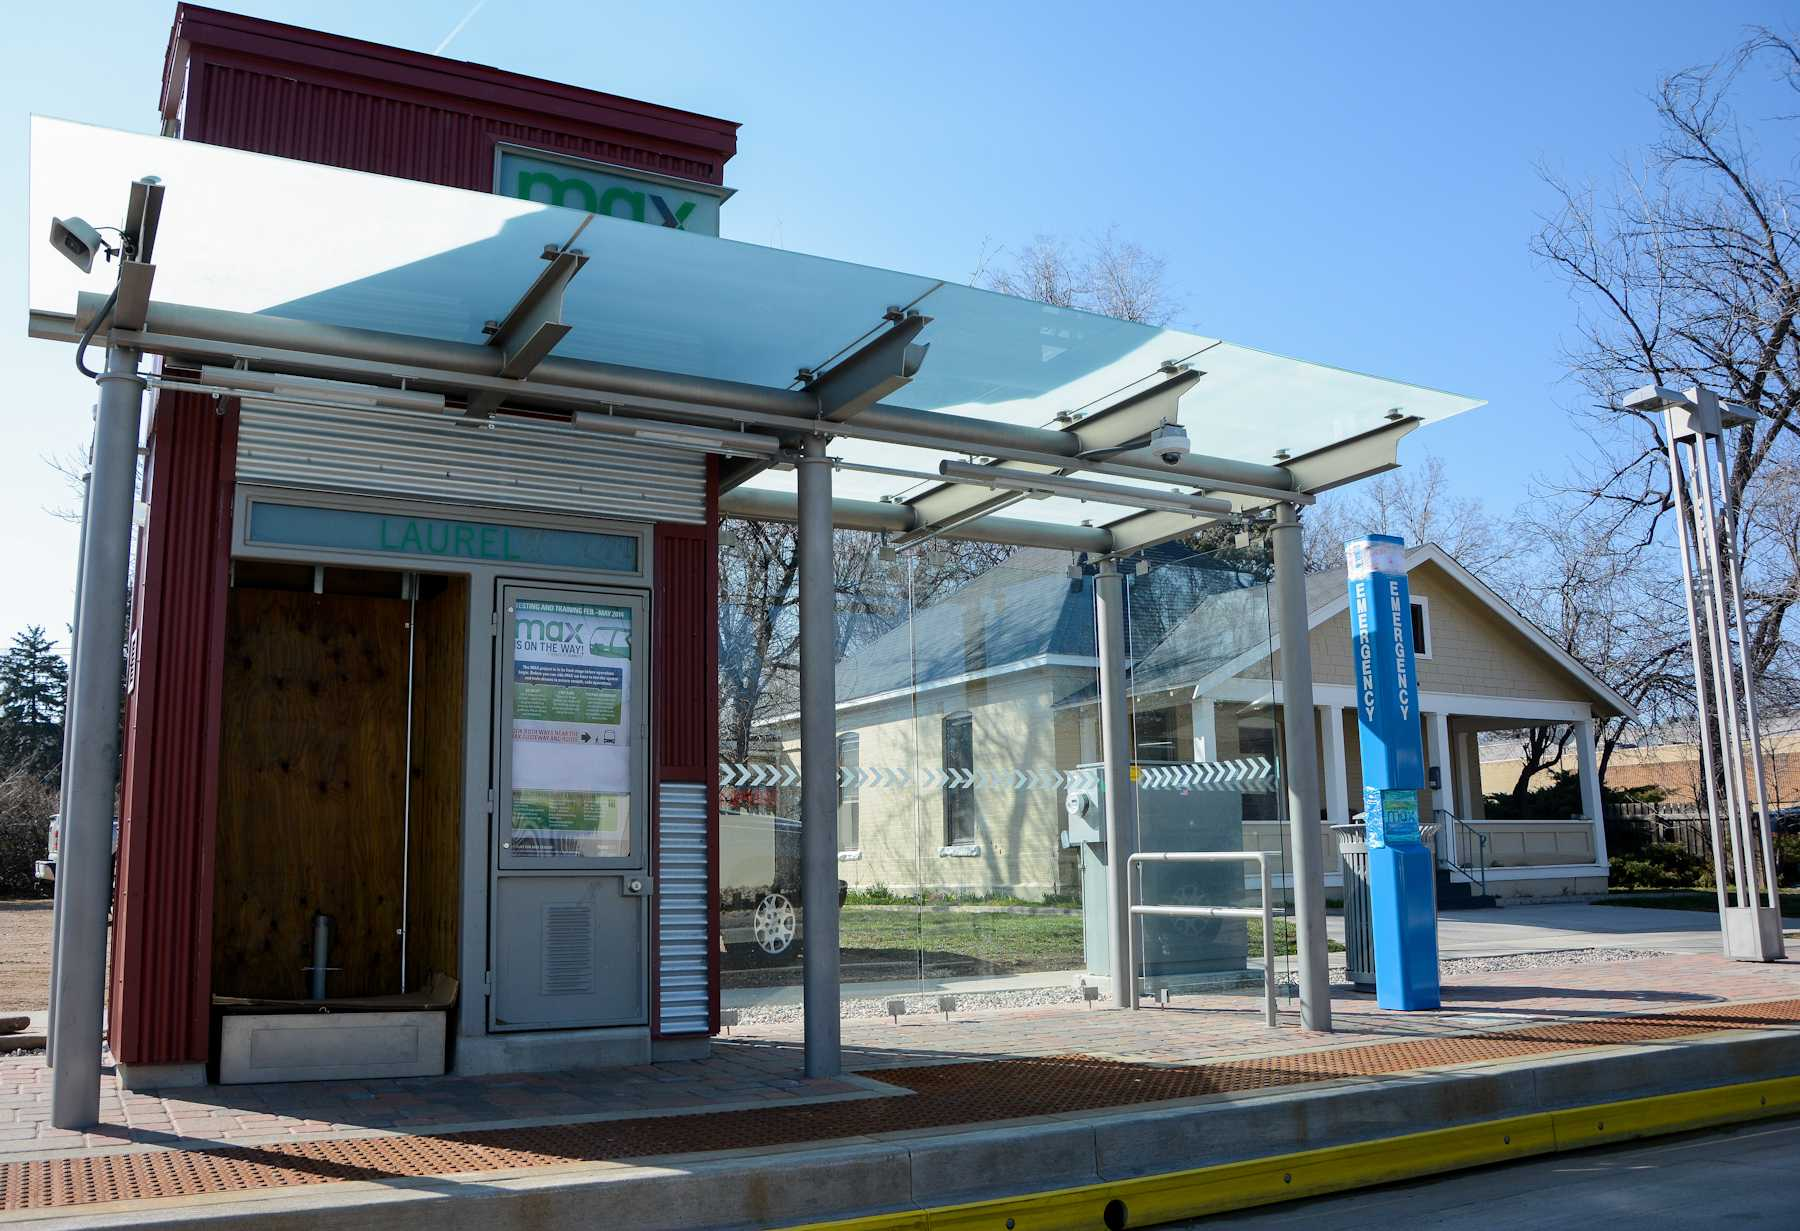 The MAX bus stations are popping up all along Mason Street thoughout Fort Collins. The system is currently undergoing testing and training before finally being installed.